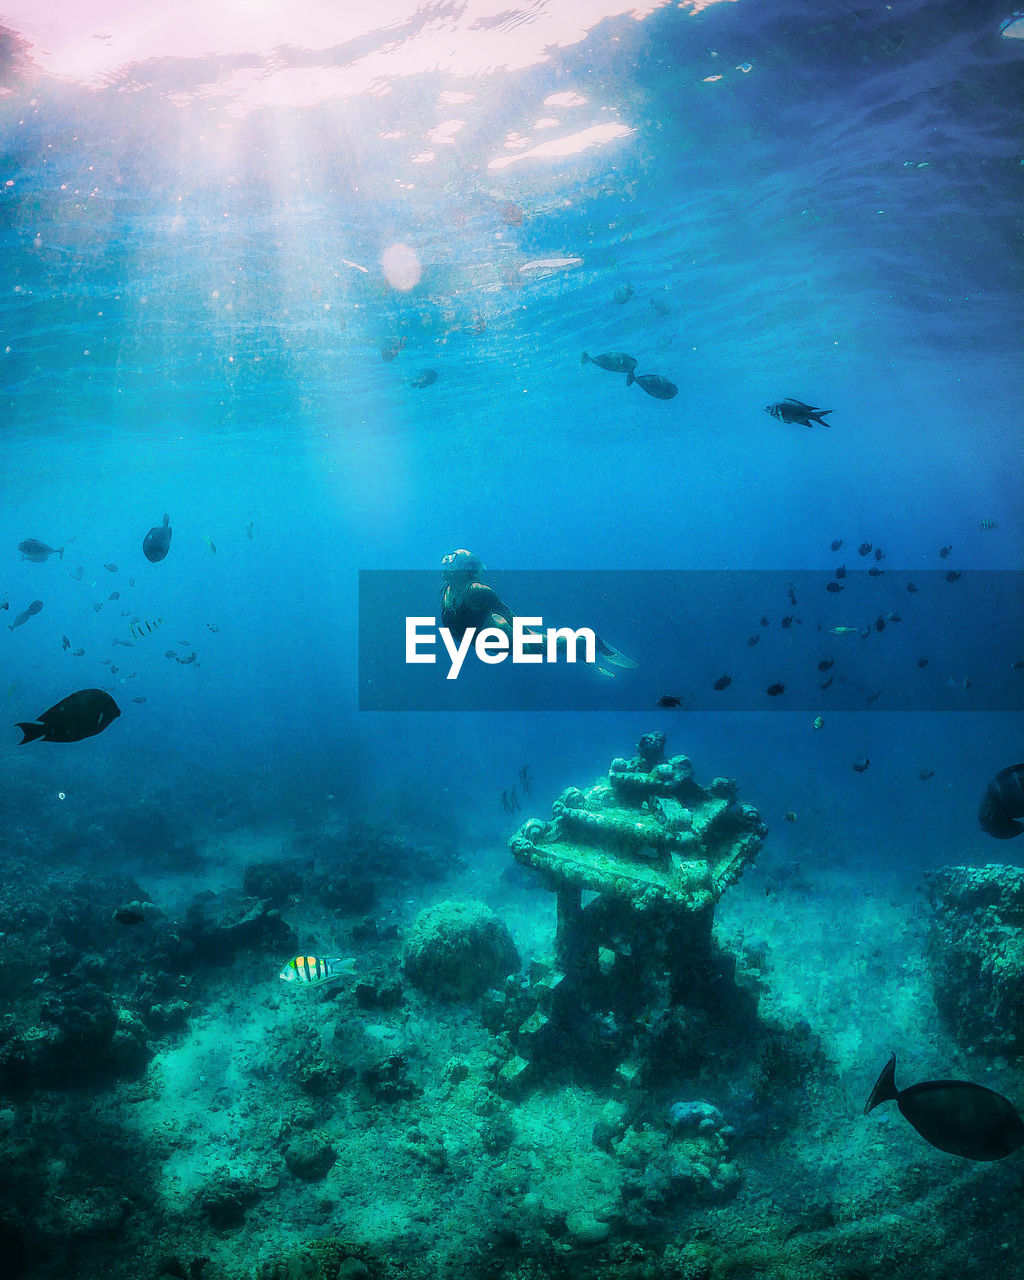 underwater, water, sea, swimming, undersea, animal, animal wildlife, animal themes, group of animals, animals in the wild, sea life, fish, vertebrate, large group of animals, nature, blue, real people, exploration, adventure, marine, outdoors, school of fish, underwater diving, turquoise colored